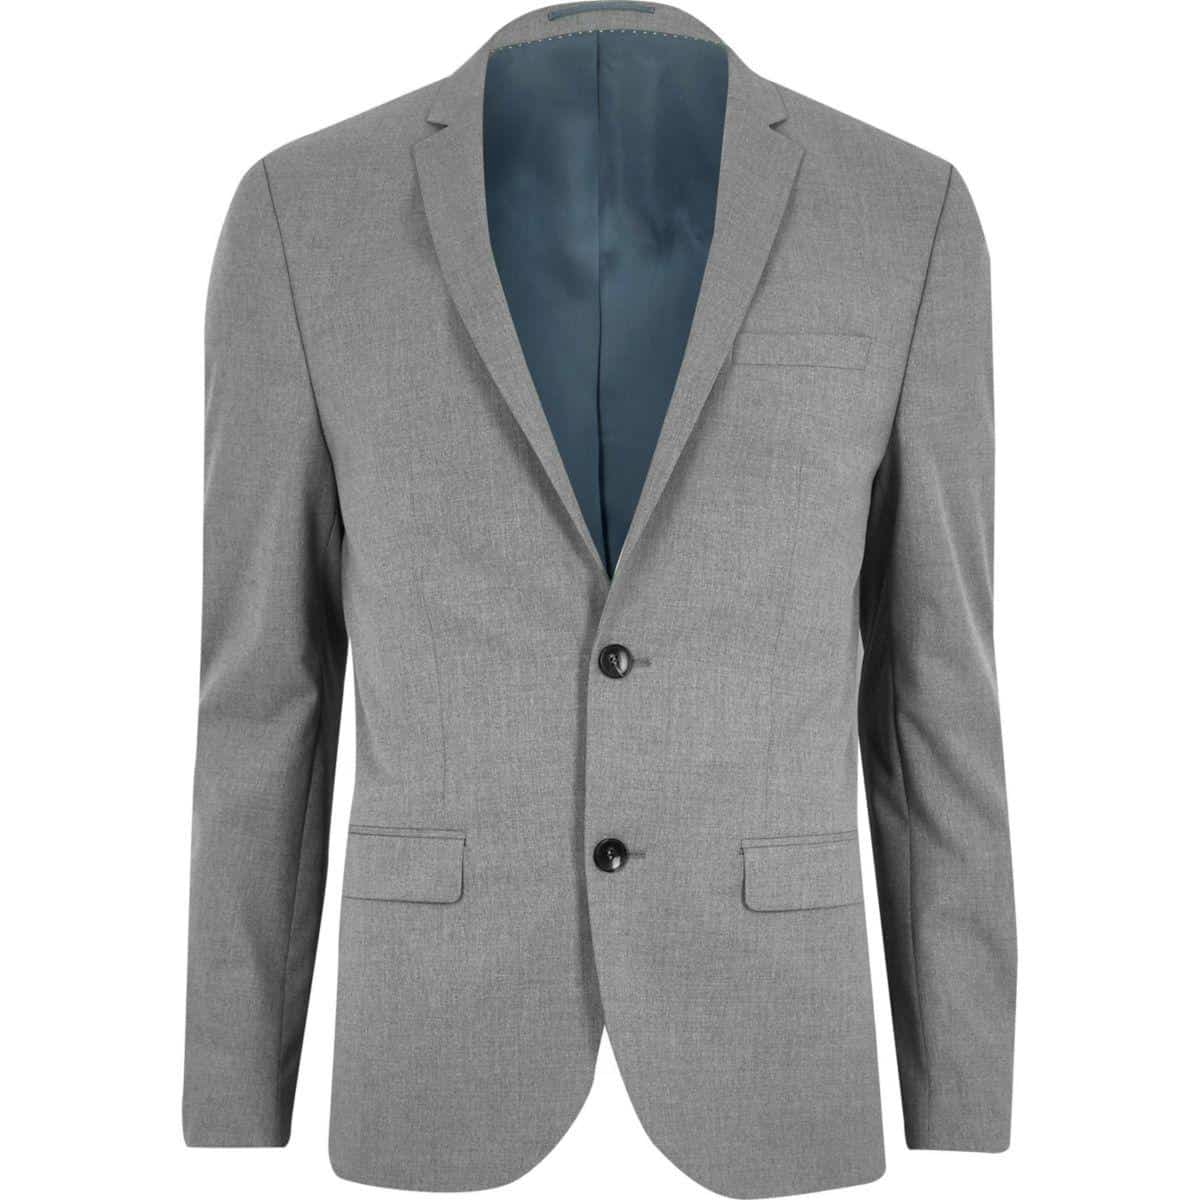 How to neatly fold and pack suit jackets